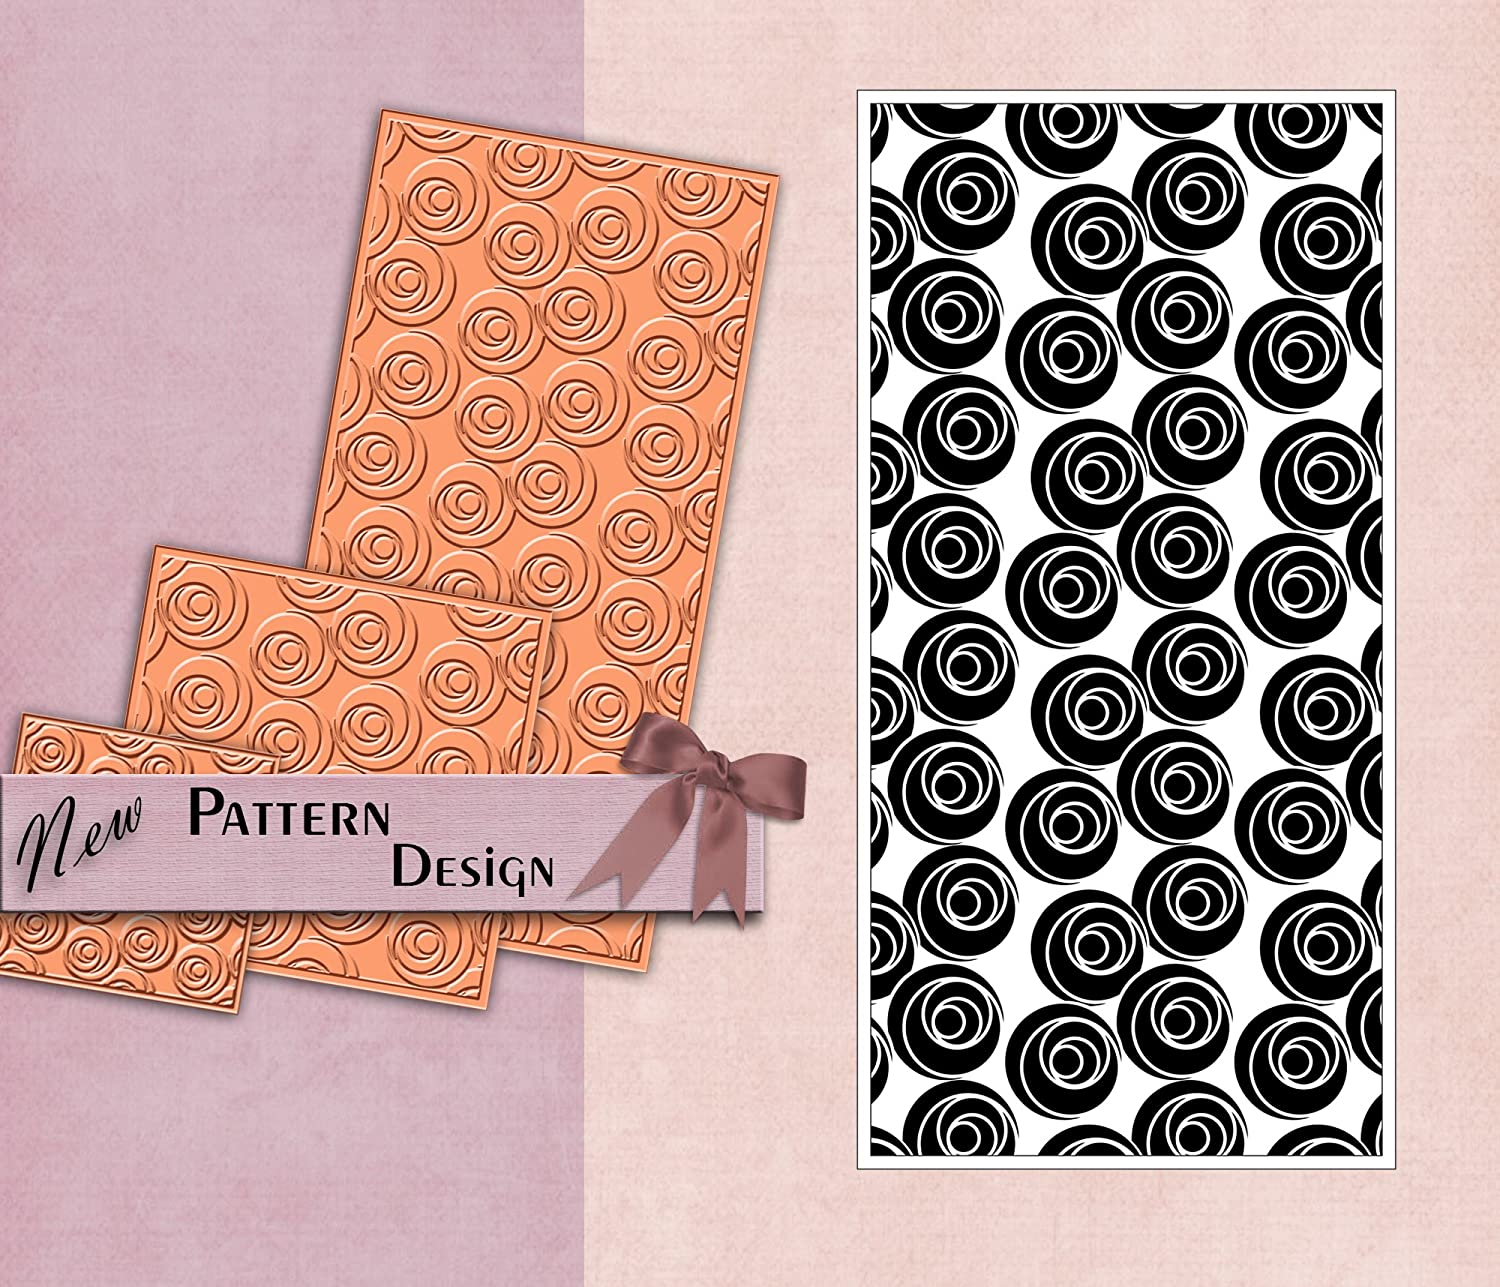 PrintValue Polymer Texture Stamp Flexible Rubber Abstract Circle Pattern Template DIY Craft Supply for Fabric /& Paper